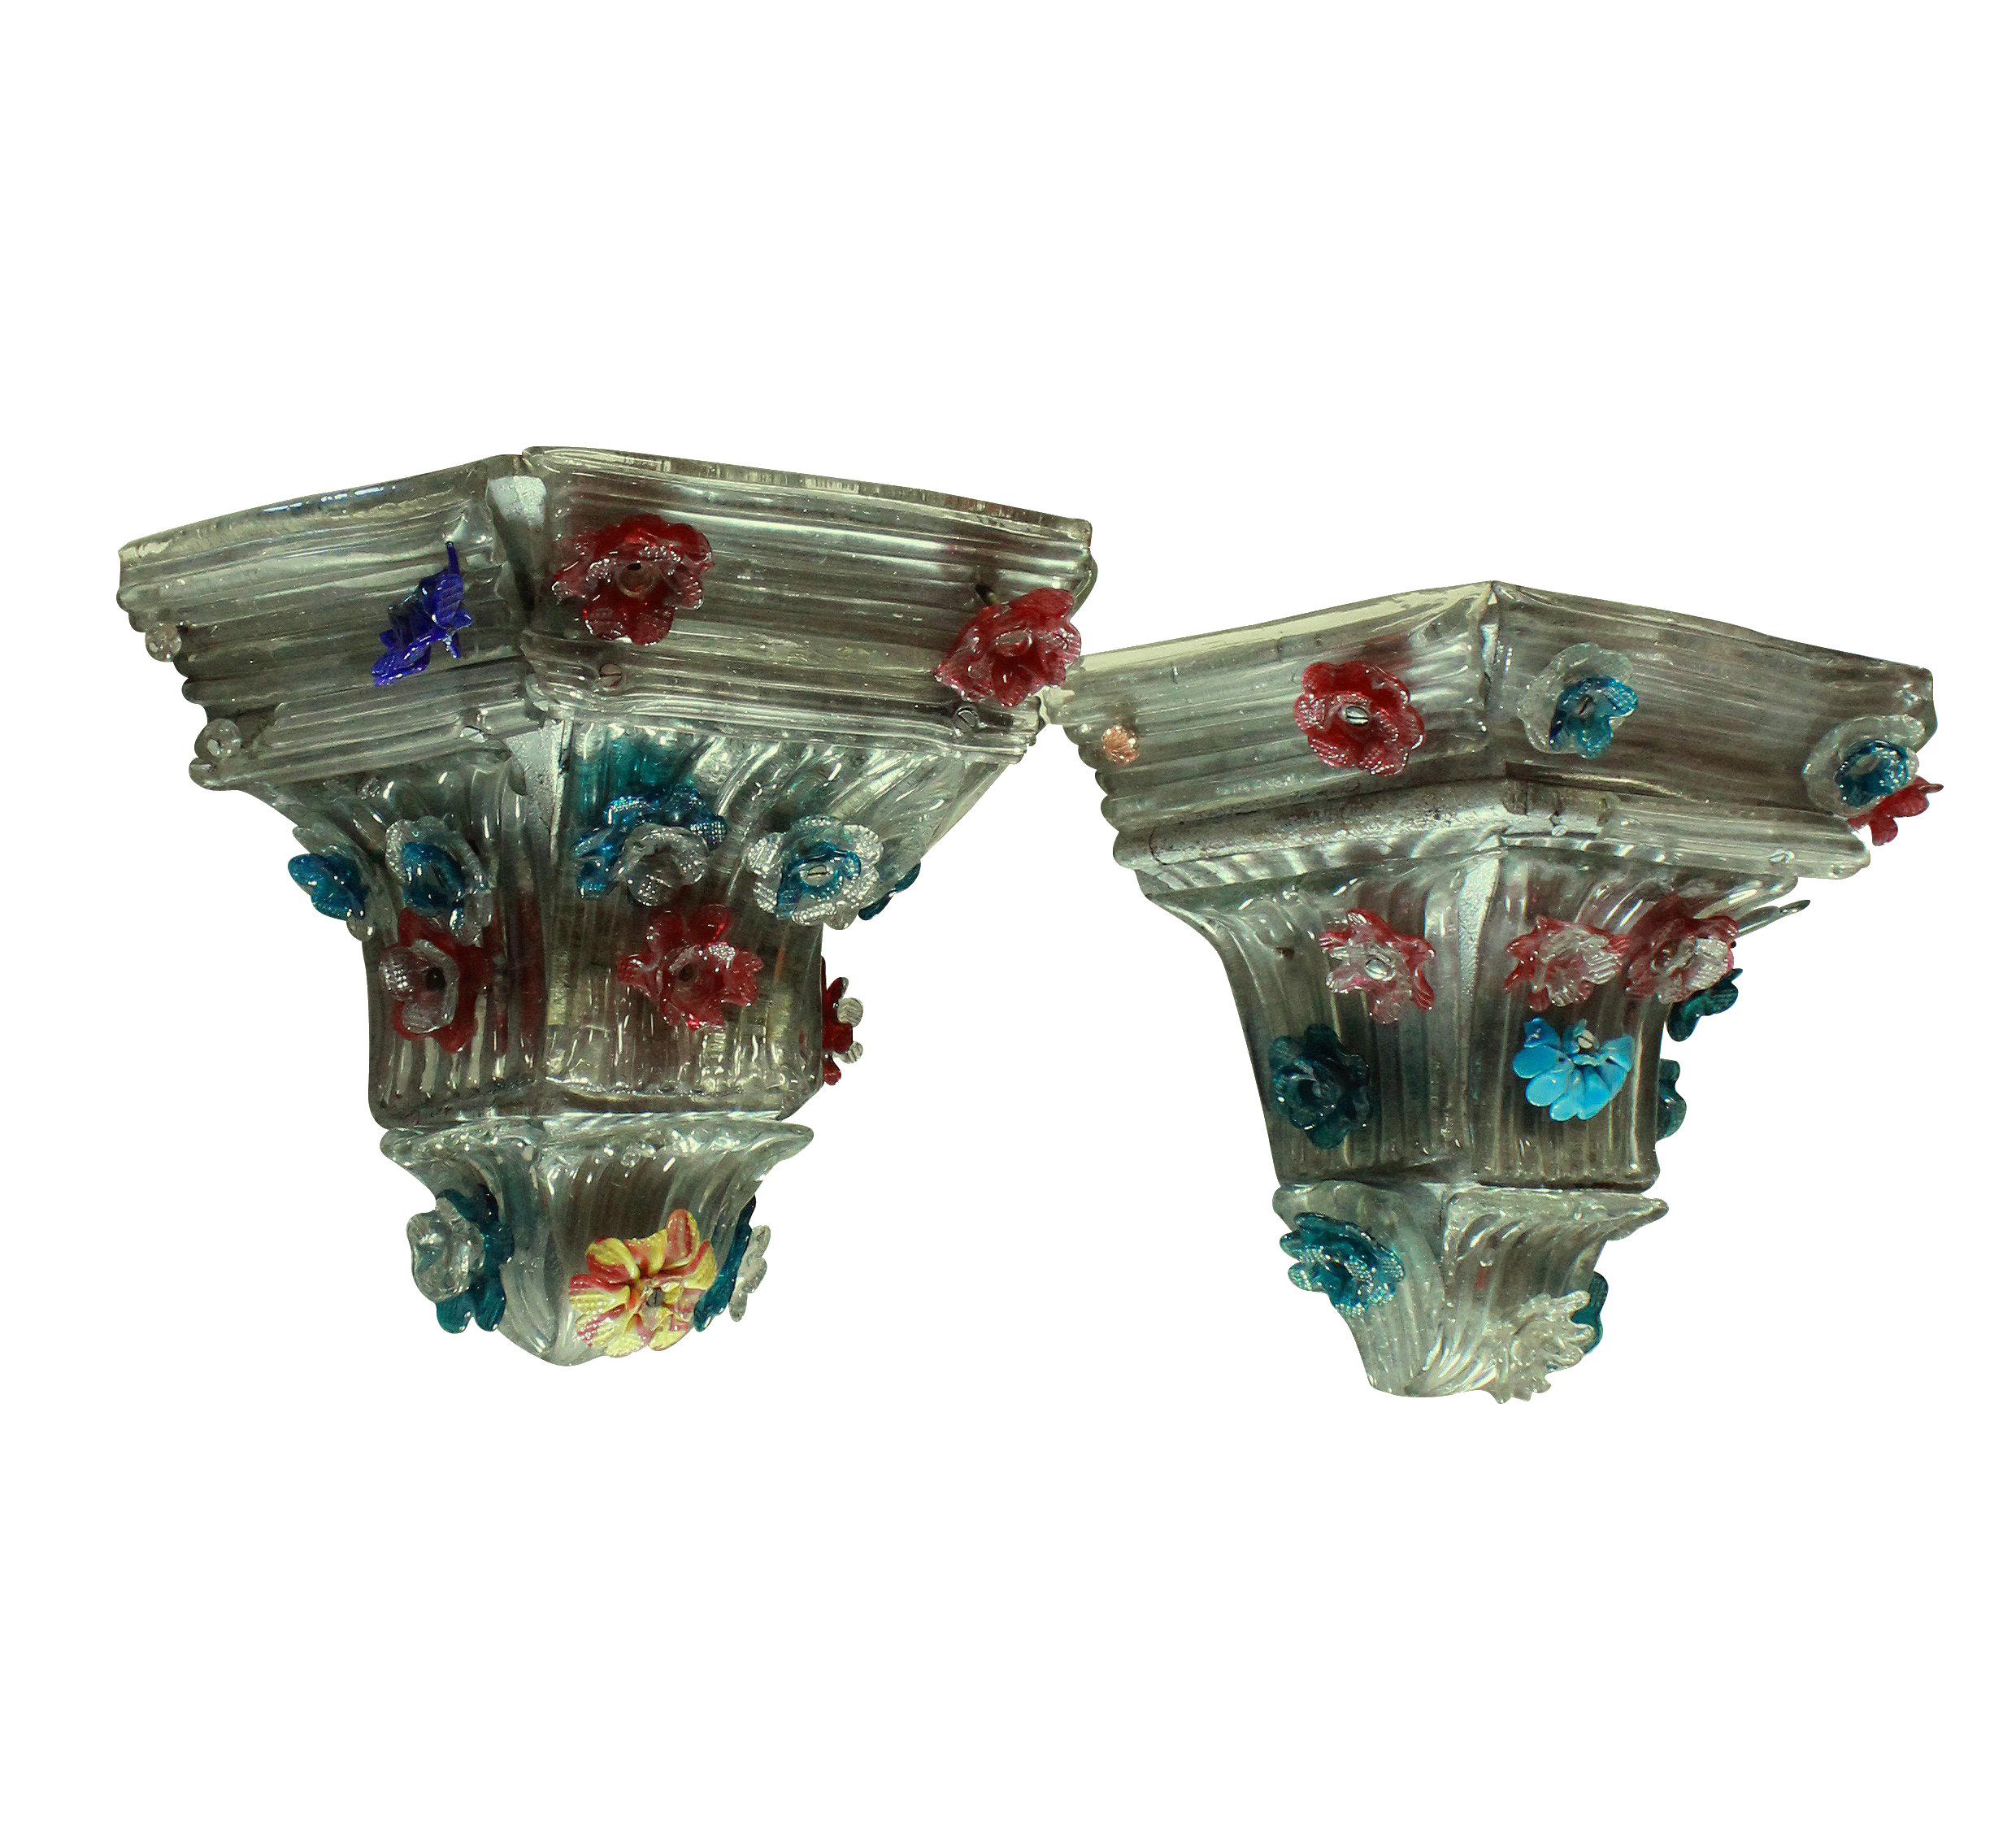 A PAIR OF CHARMING MURANO WALL BRACKETS